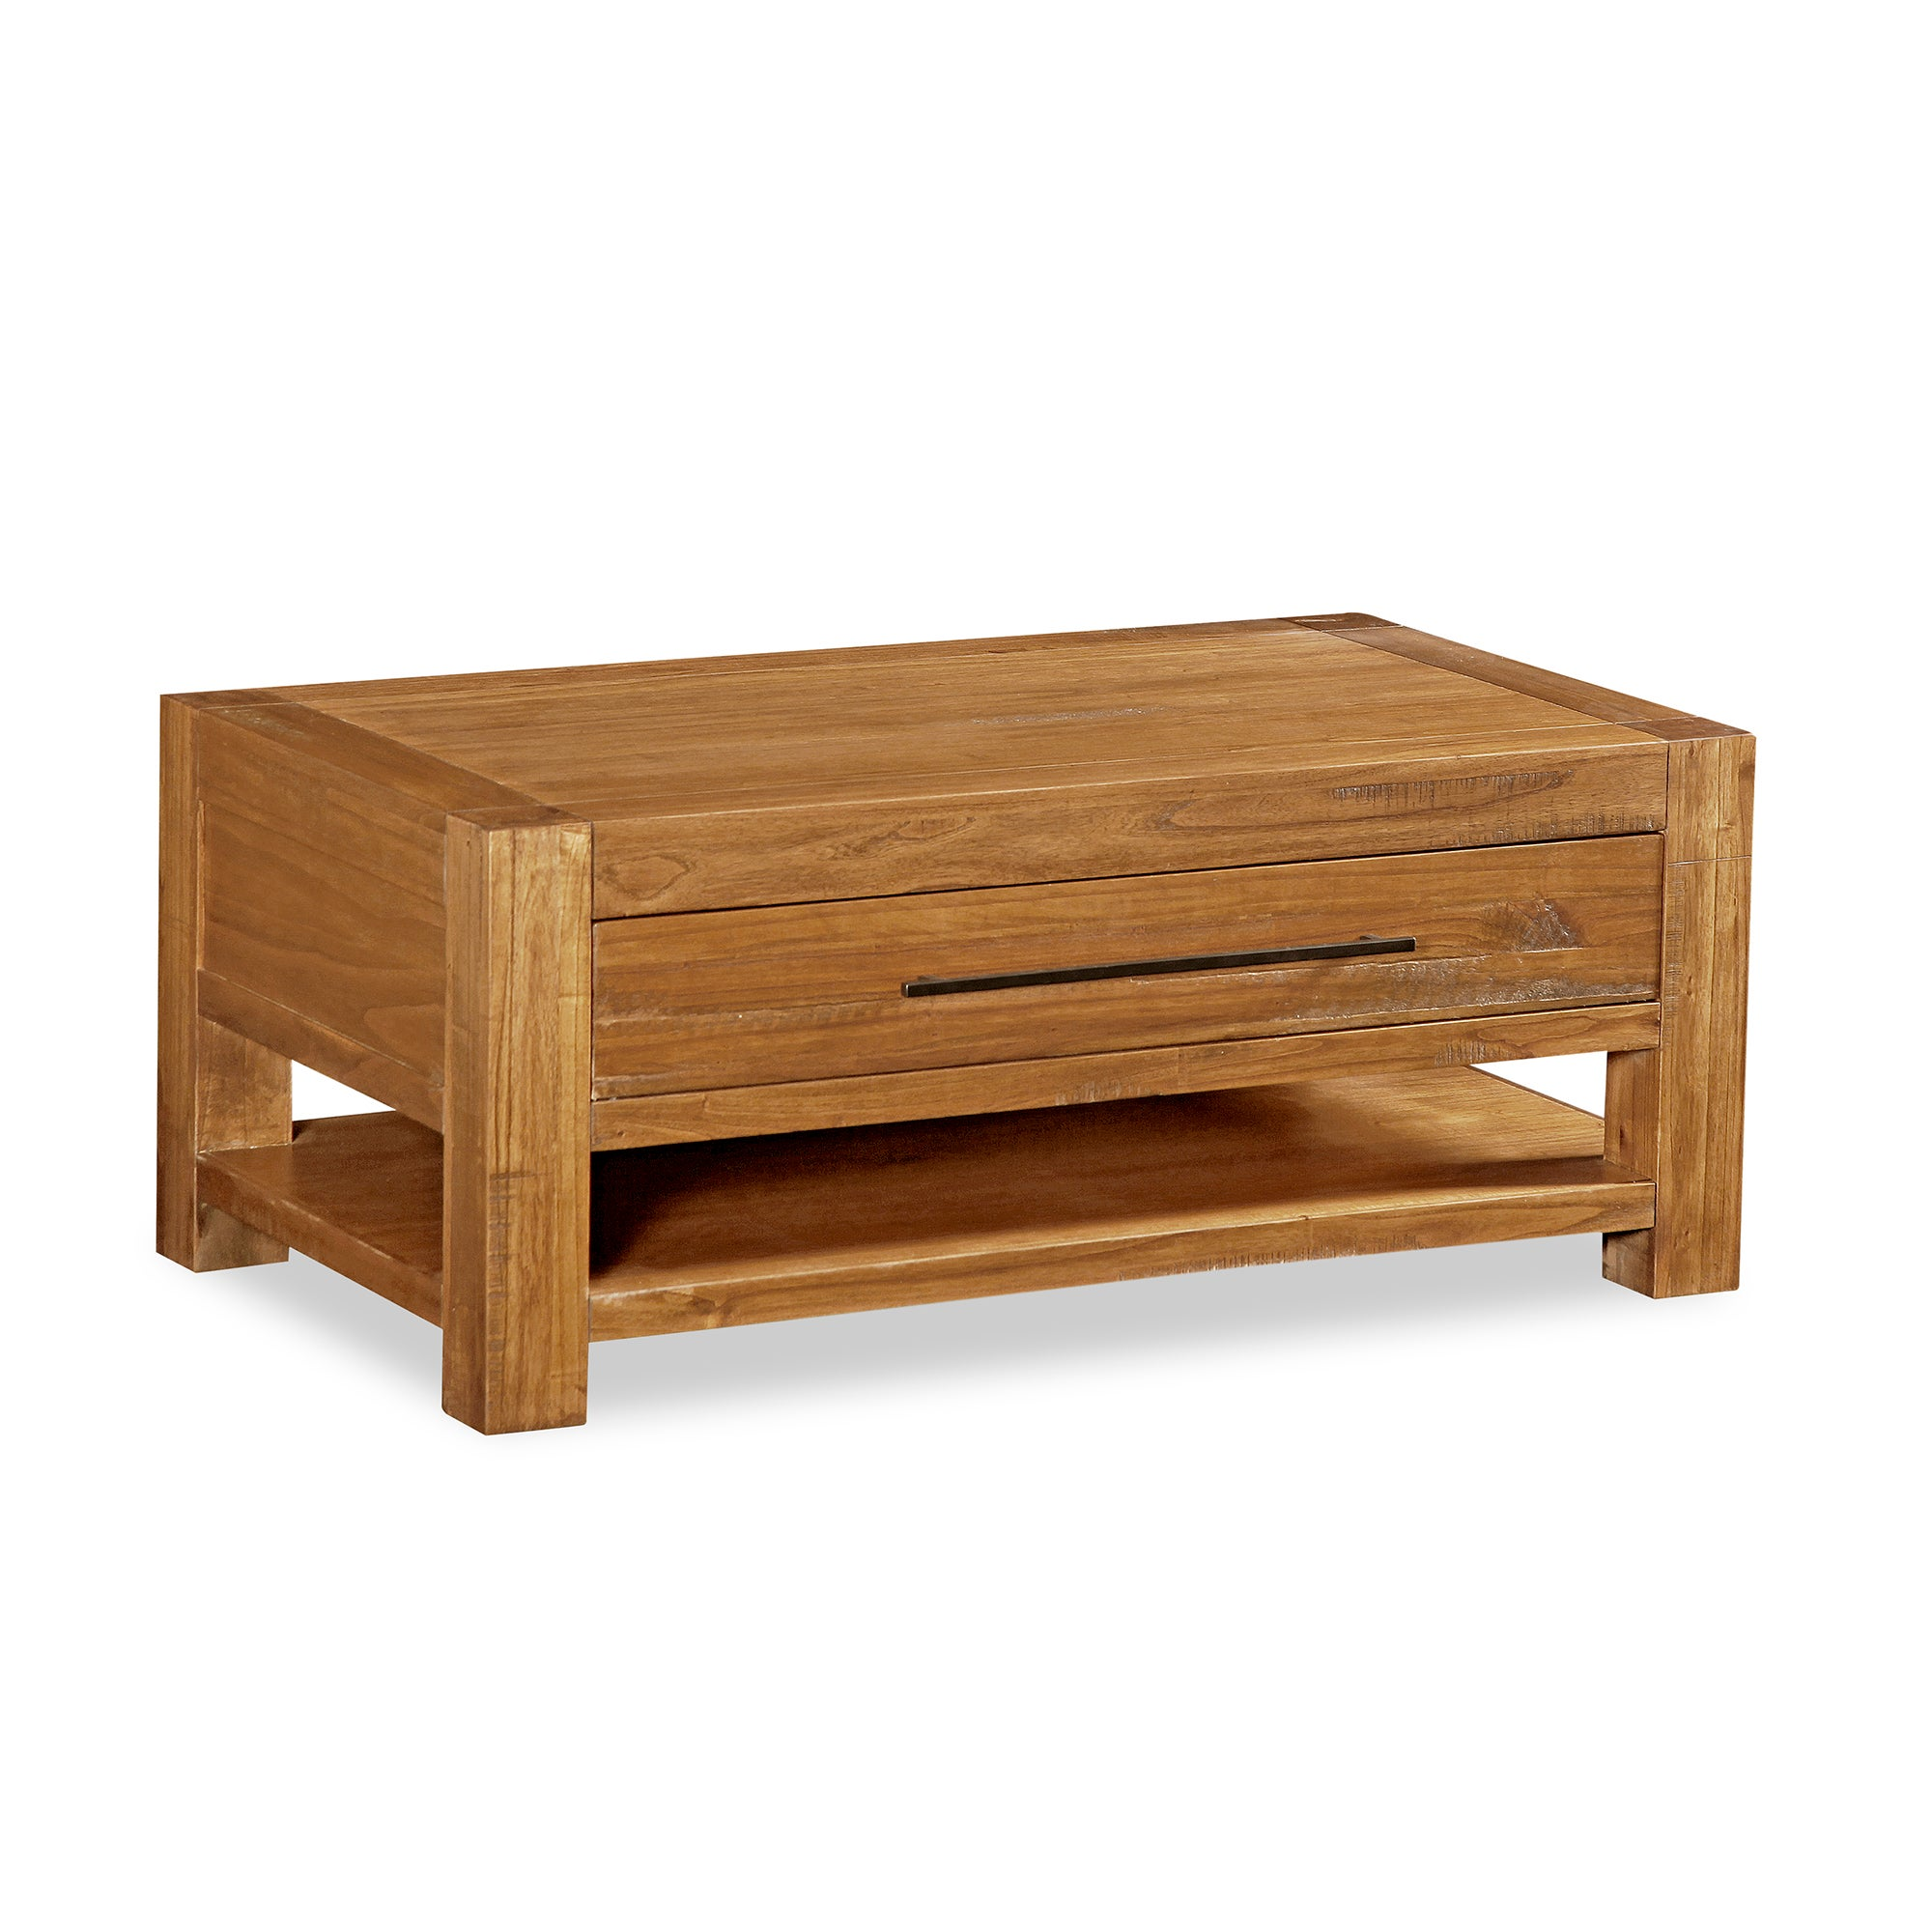 Buy Cheap Acacia Wood Coffee Table Compare Tables Prices For Best Uk Deals